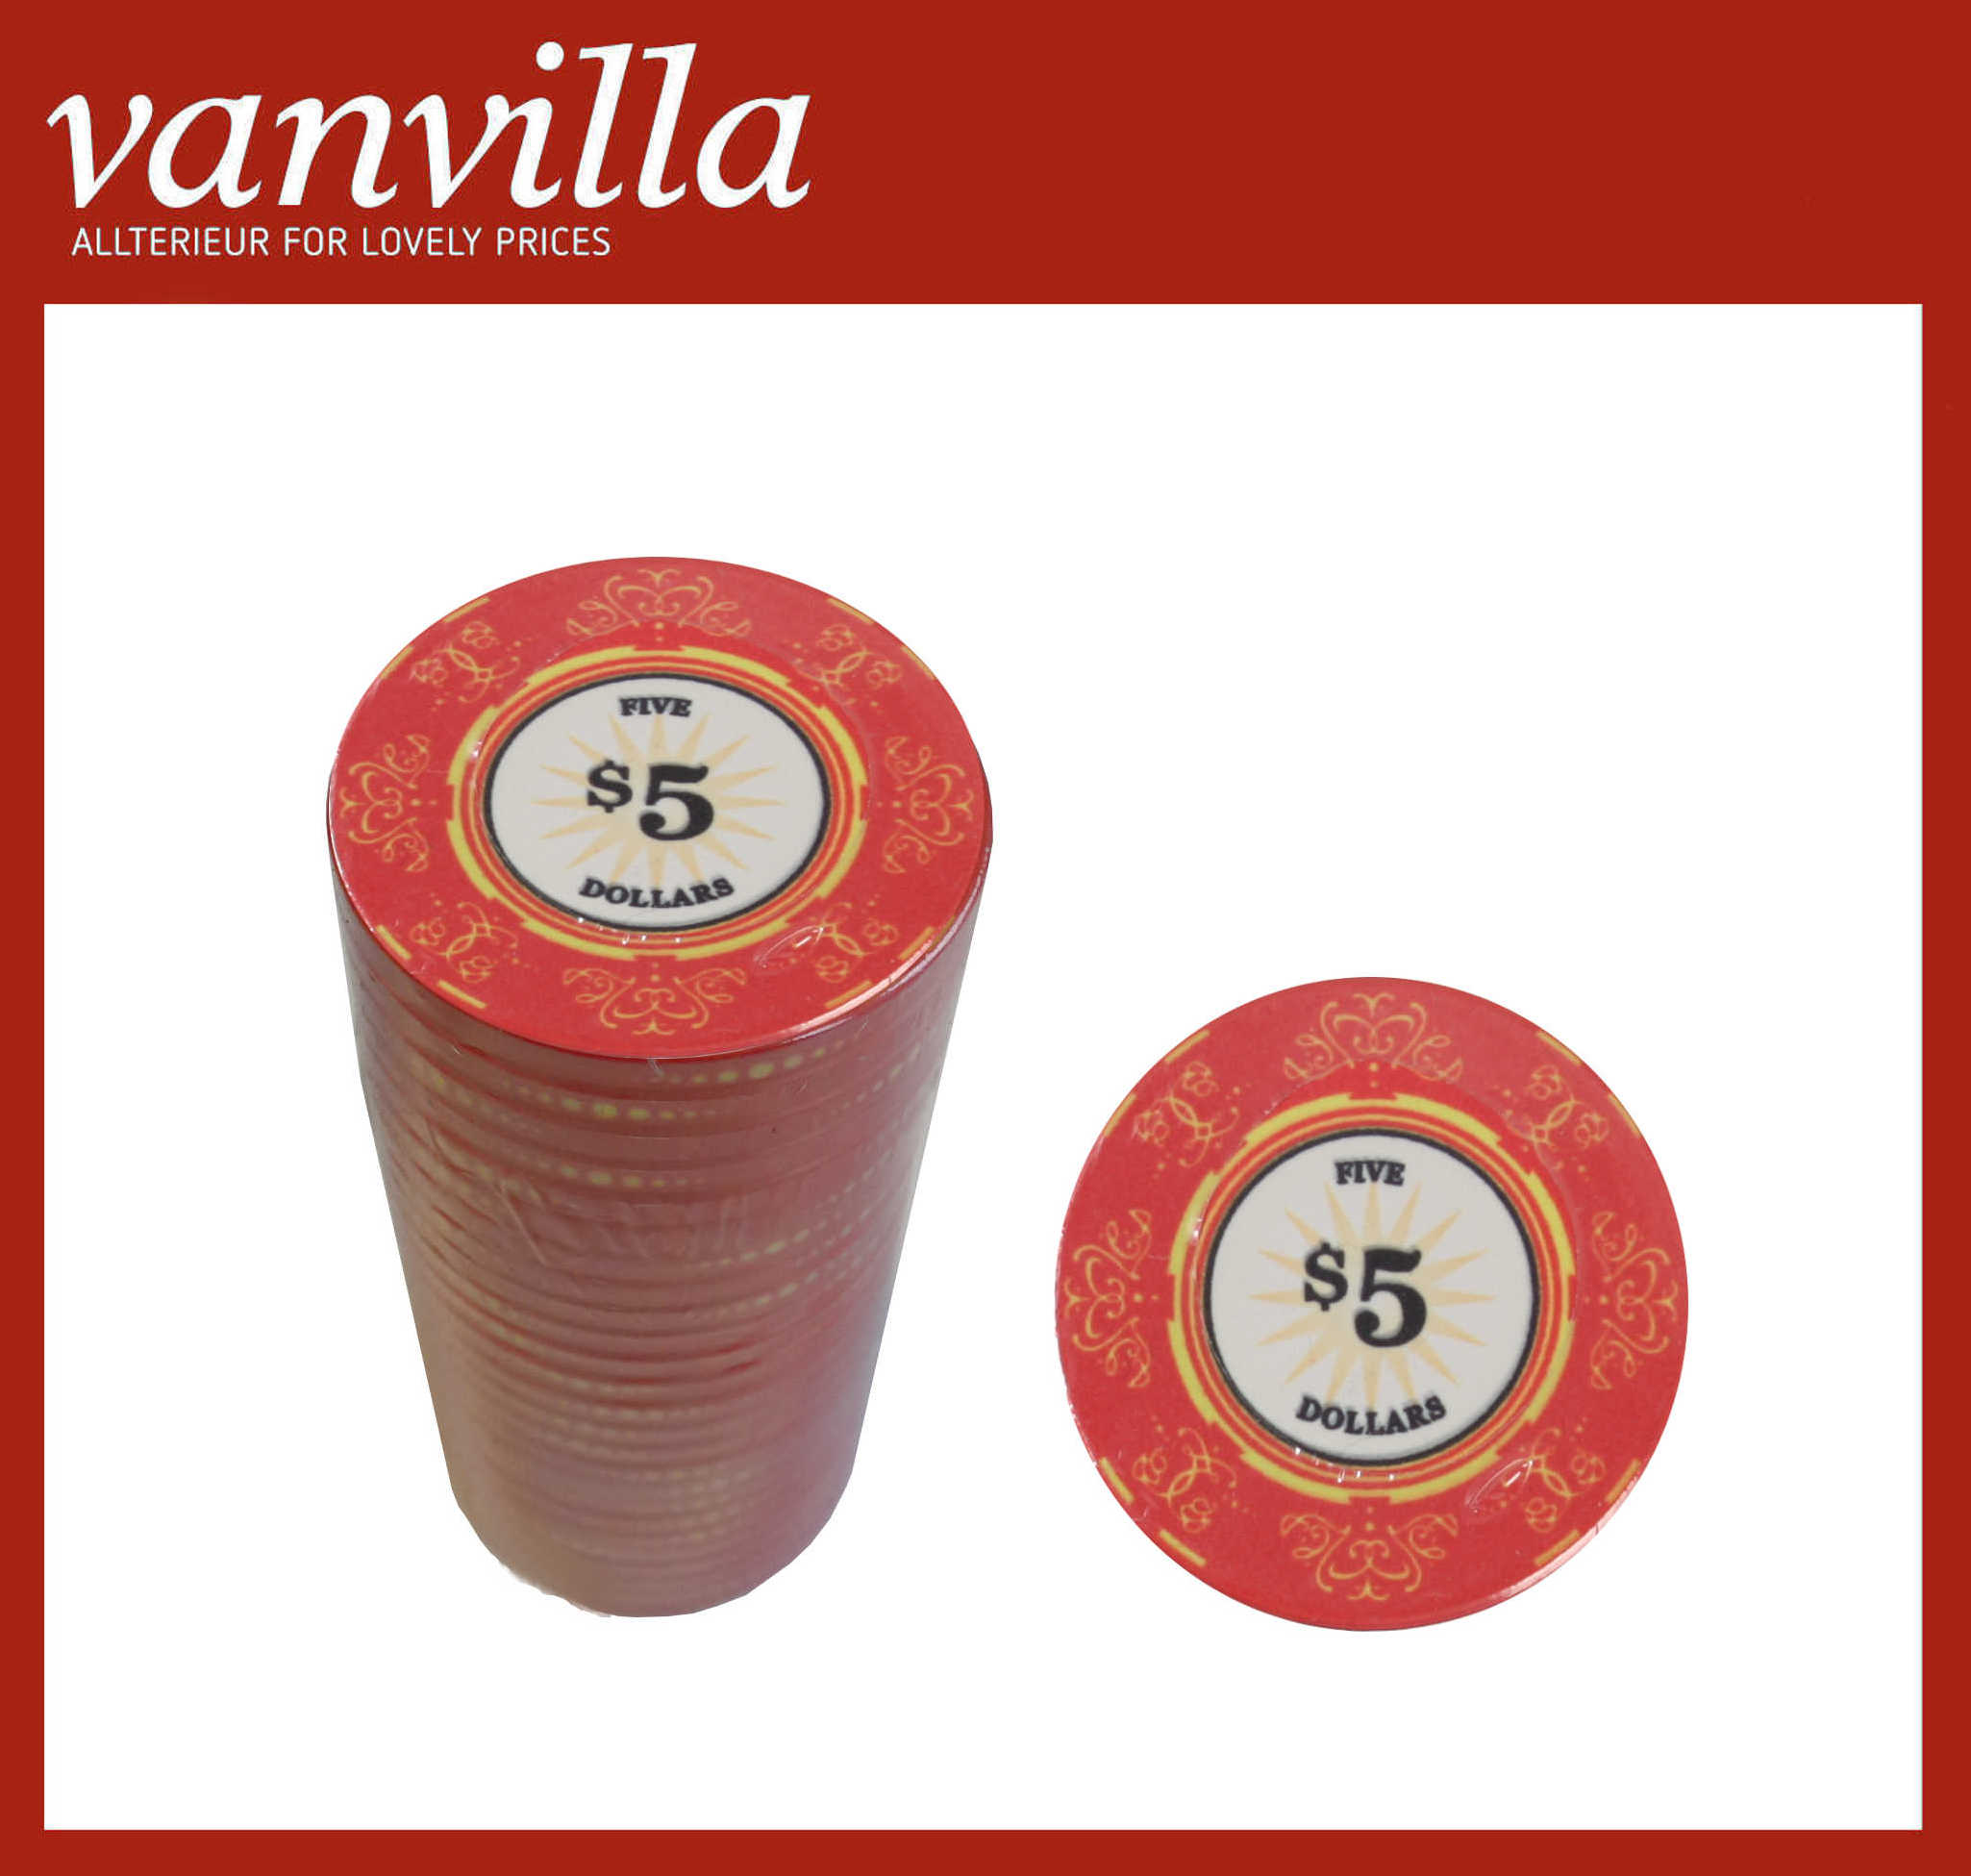 vanvilla Pokerchips Keramik WERT 5 Keramikchips Poker 25 Chips